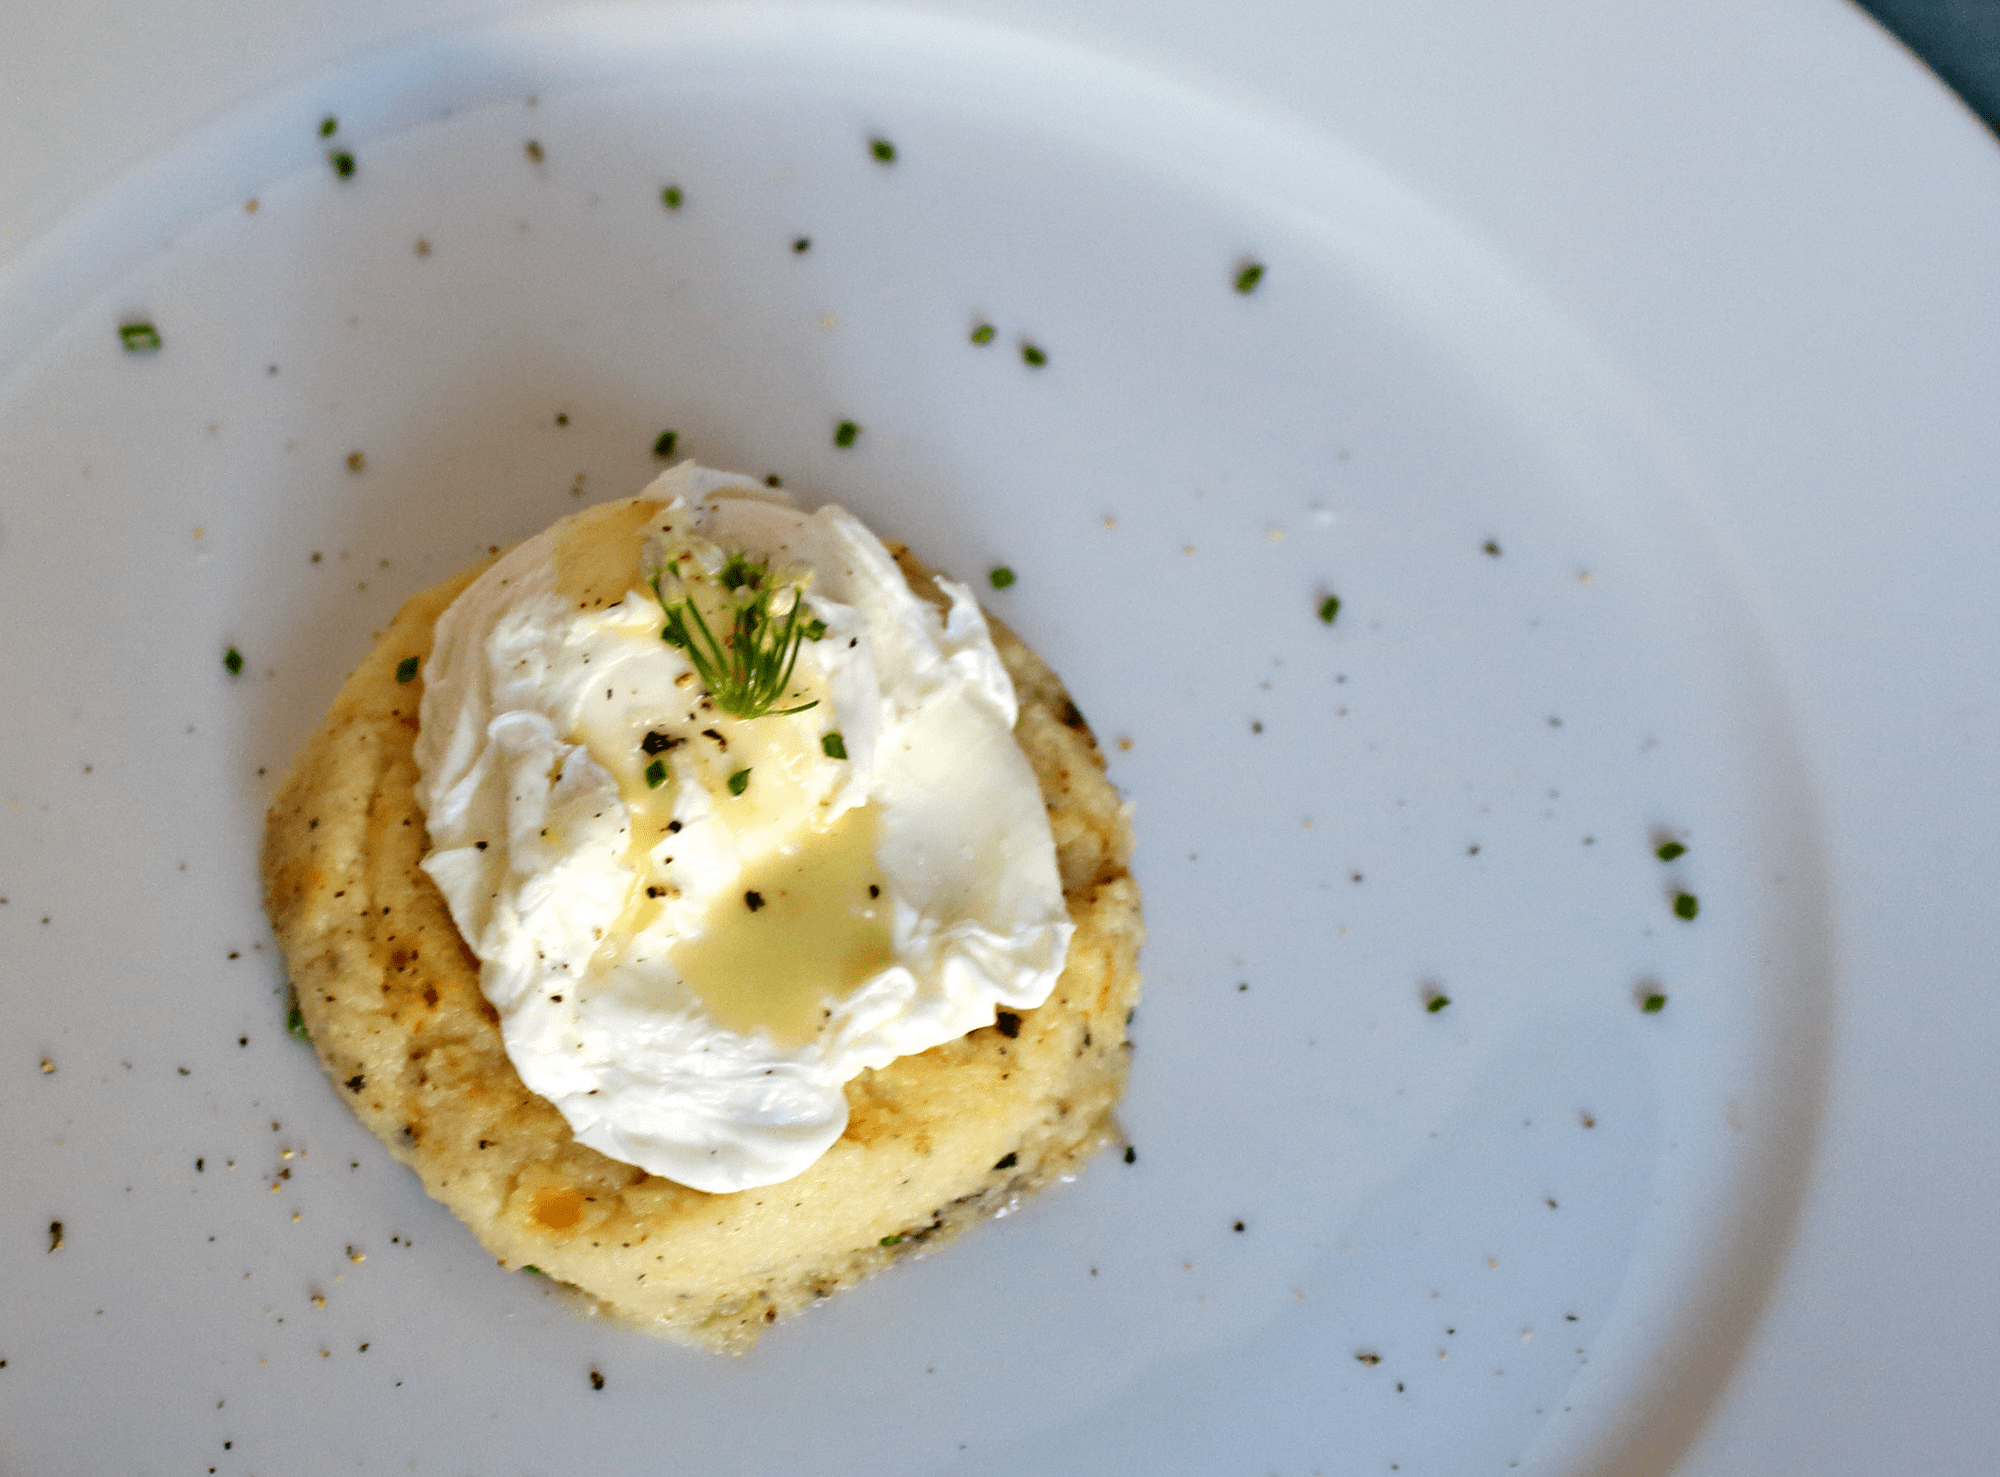 Cheesy Cauliflower Grits with a Poached Egg